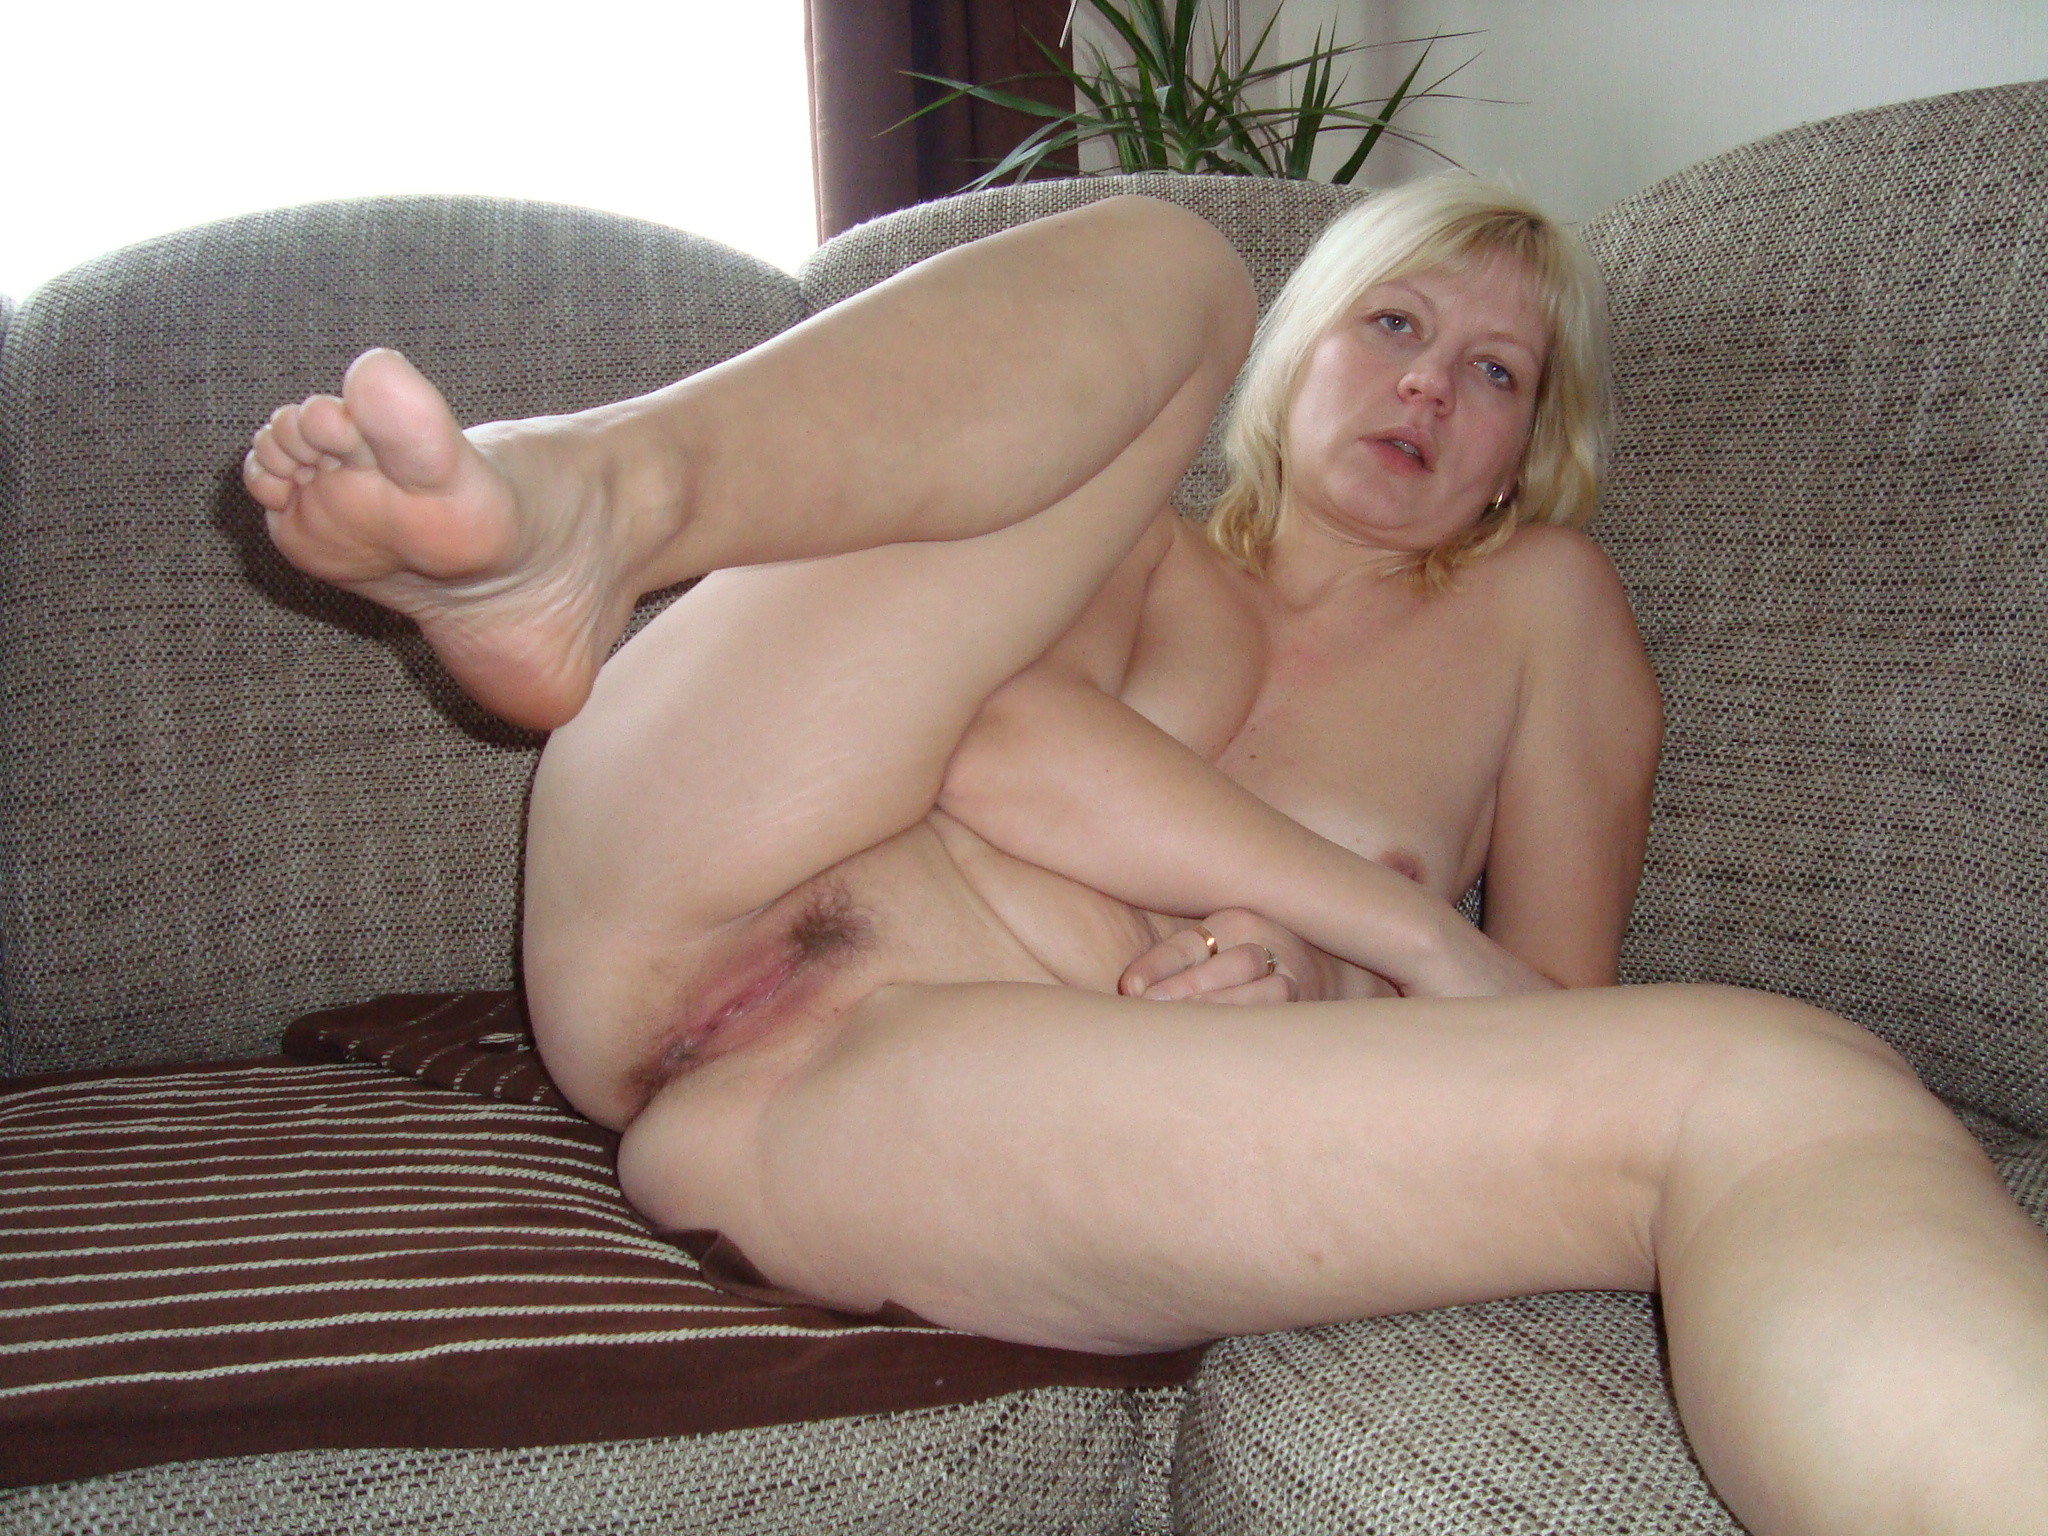 bbw large fat mature photos jpg 422x640